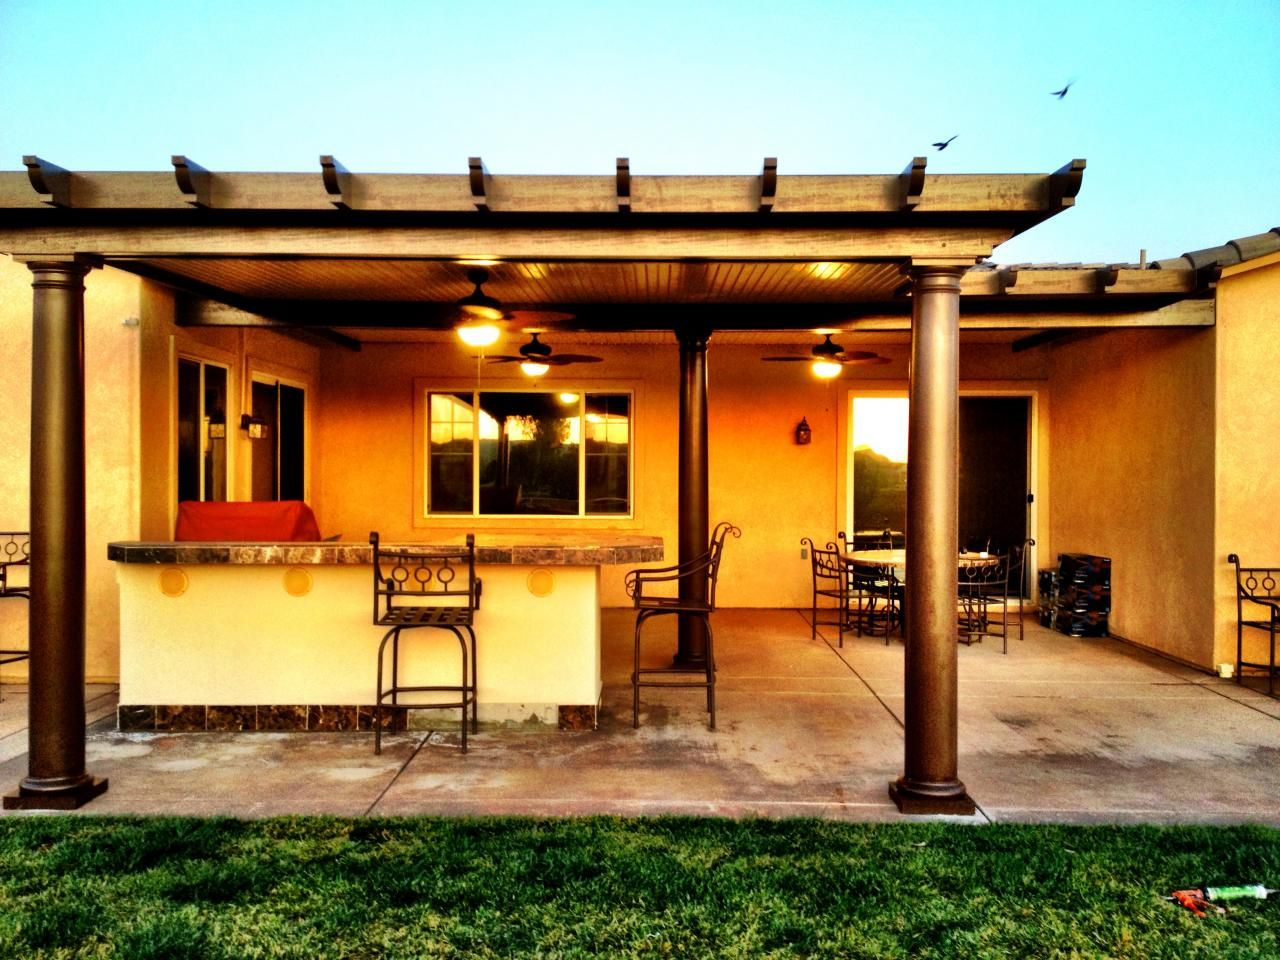 Southern California Patios - sOLID PATIO COVERS   Covered ... on Back Patio Extension Ideas id=21008